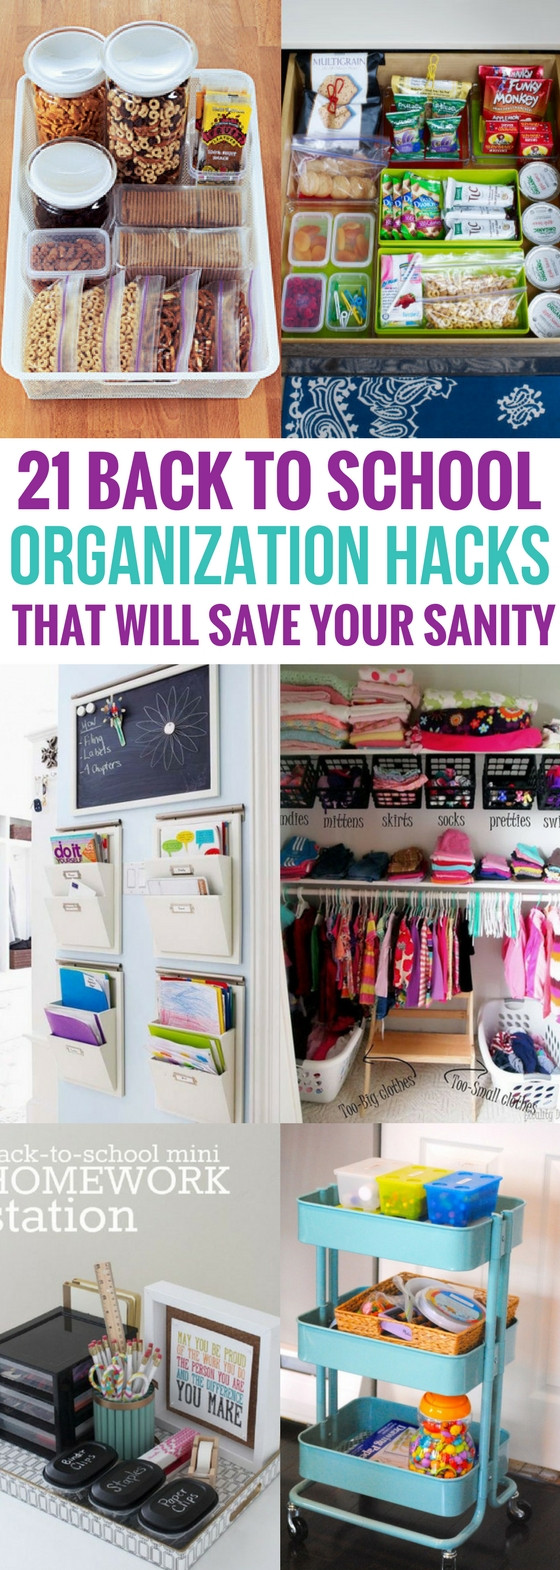 Back To School DIY Organization  21 Back To School Organization Hacks That Will Save Your